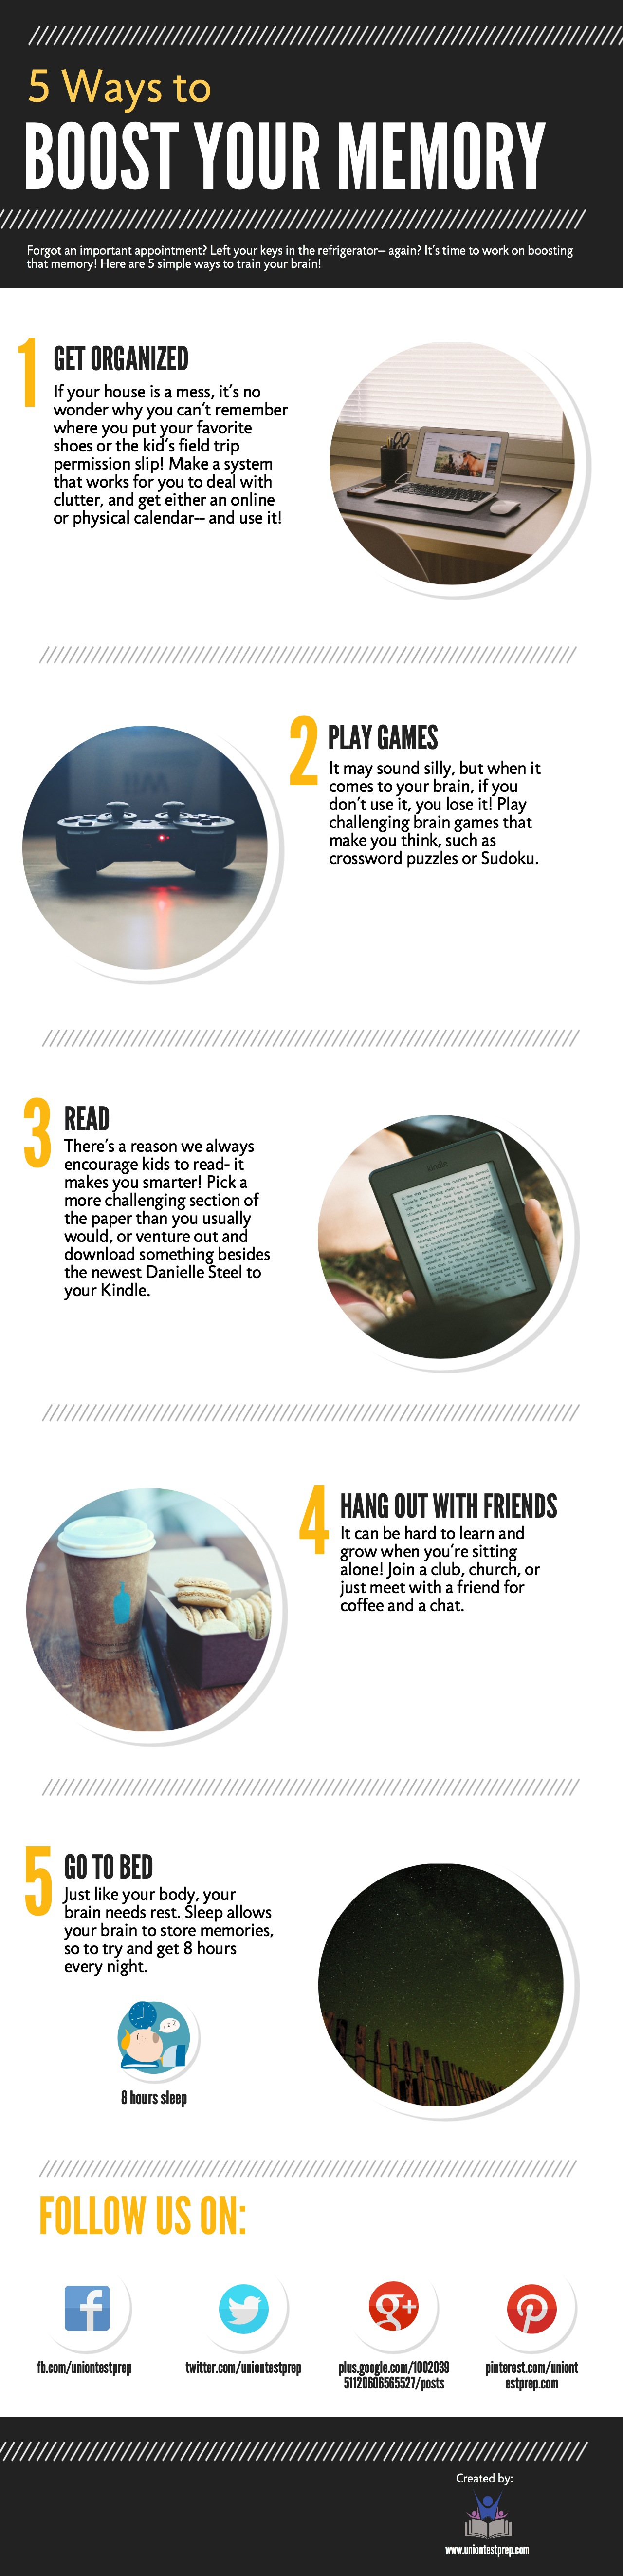 Tips to boost your memory